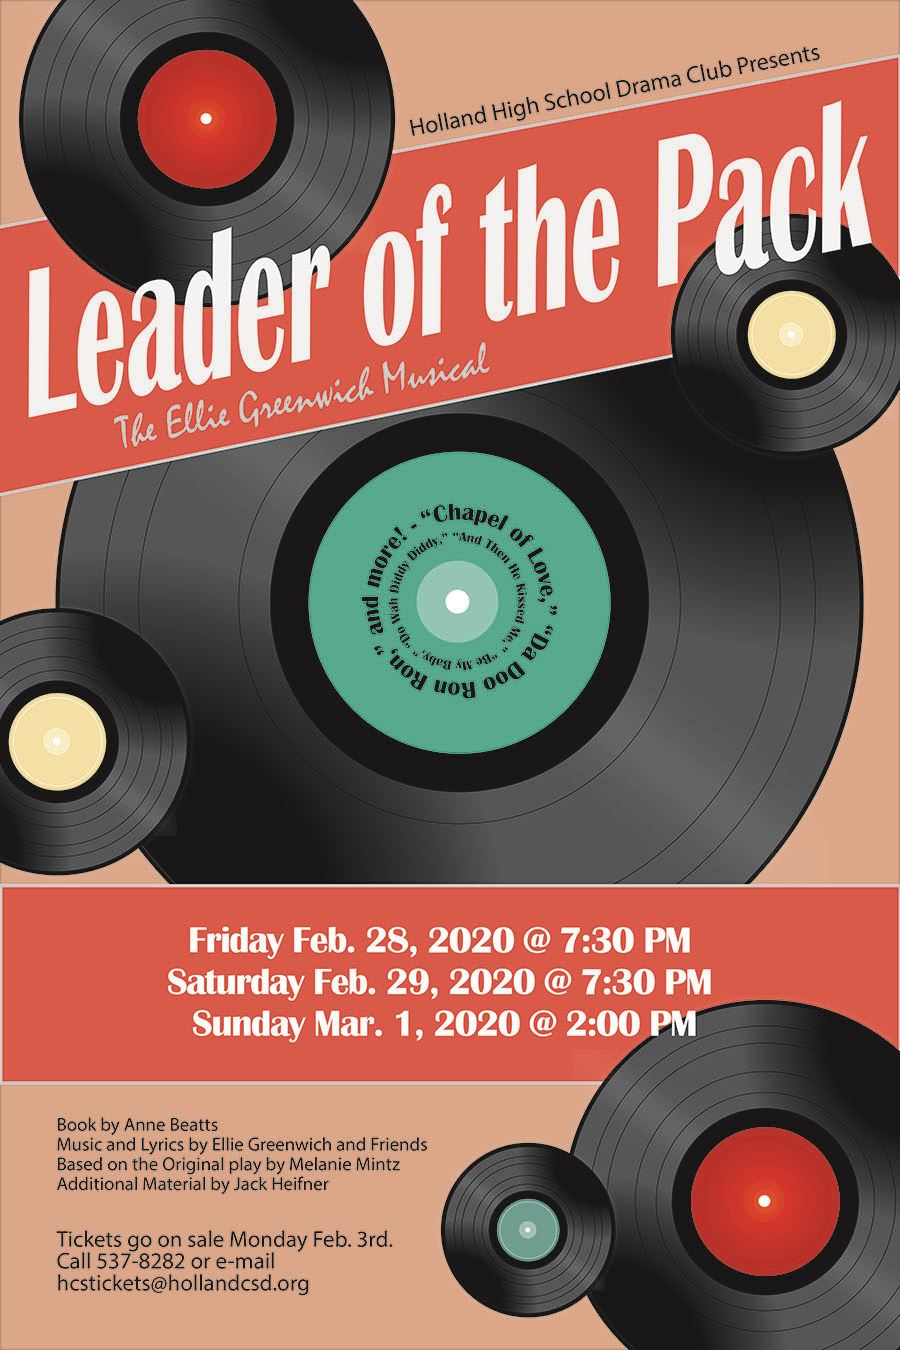 Holland High School Drama Club Presents Leader of the Pack